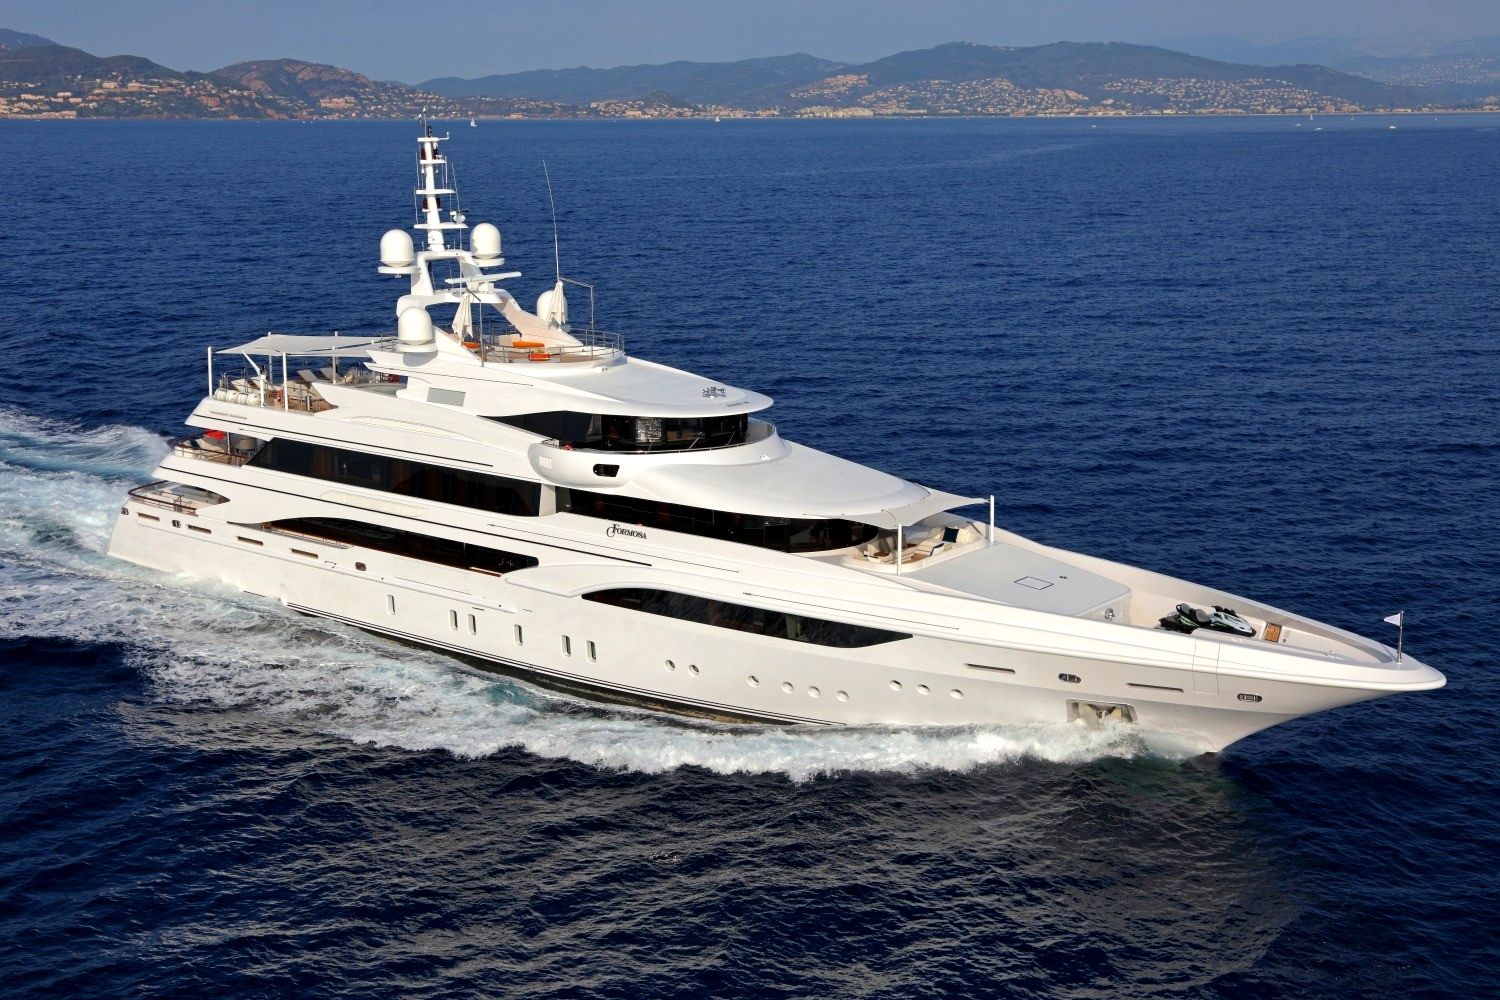 The most expensive yachts and superyachts in the world.